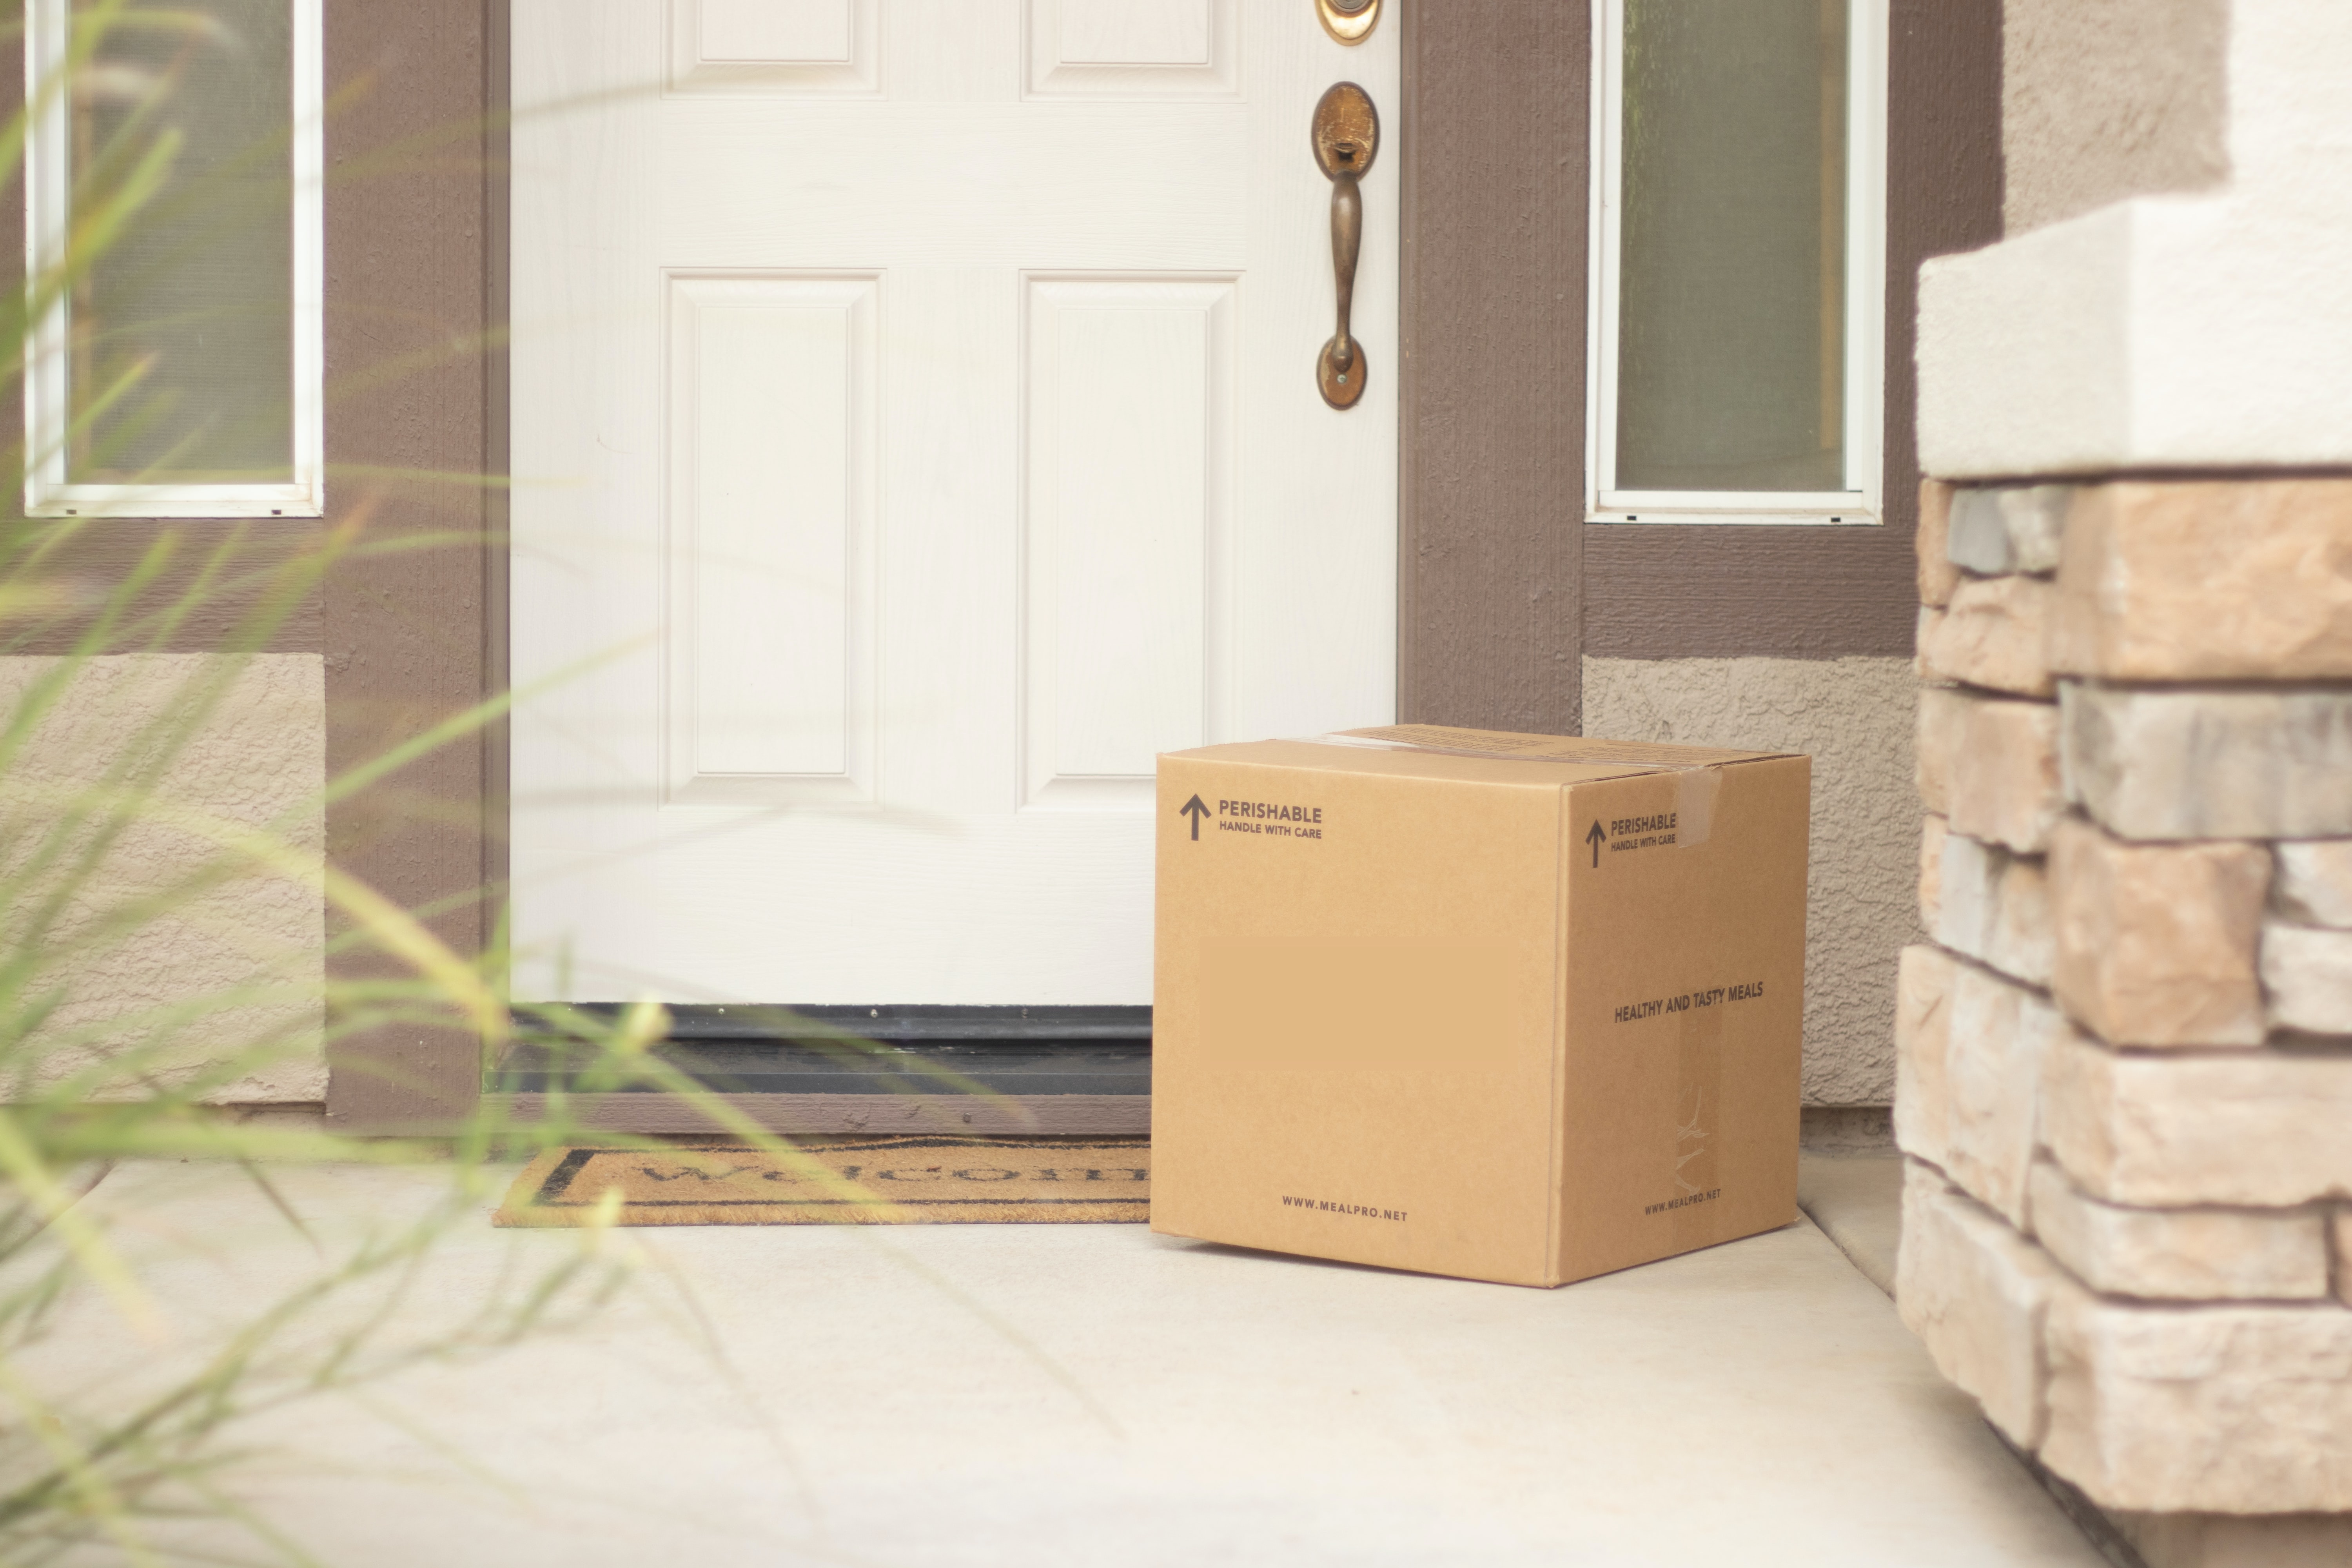 cardboard box package delivery on porch